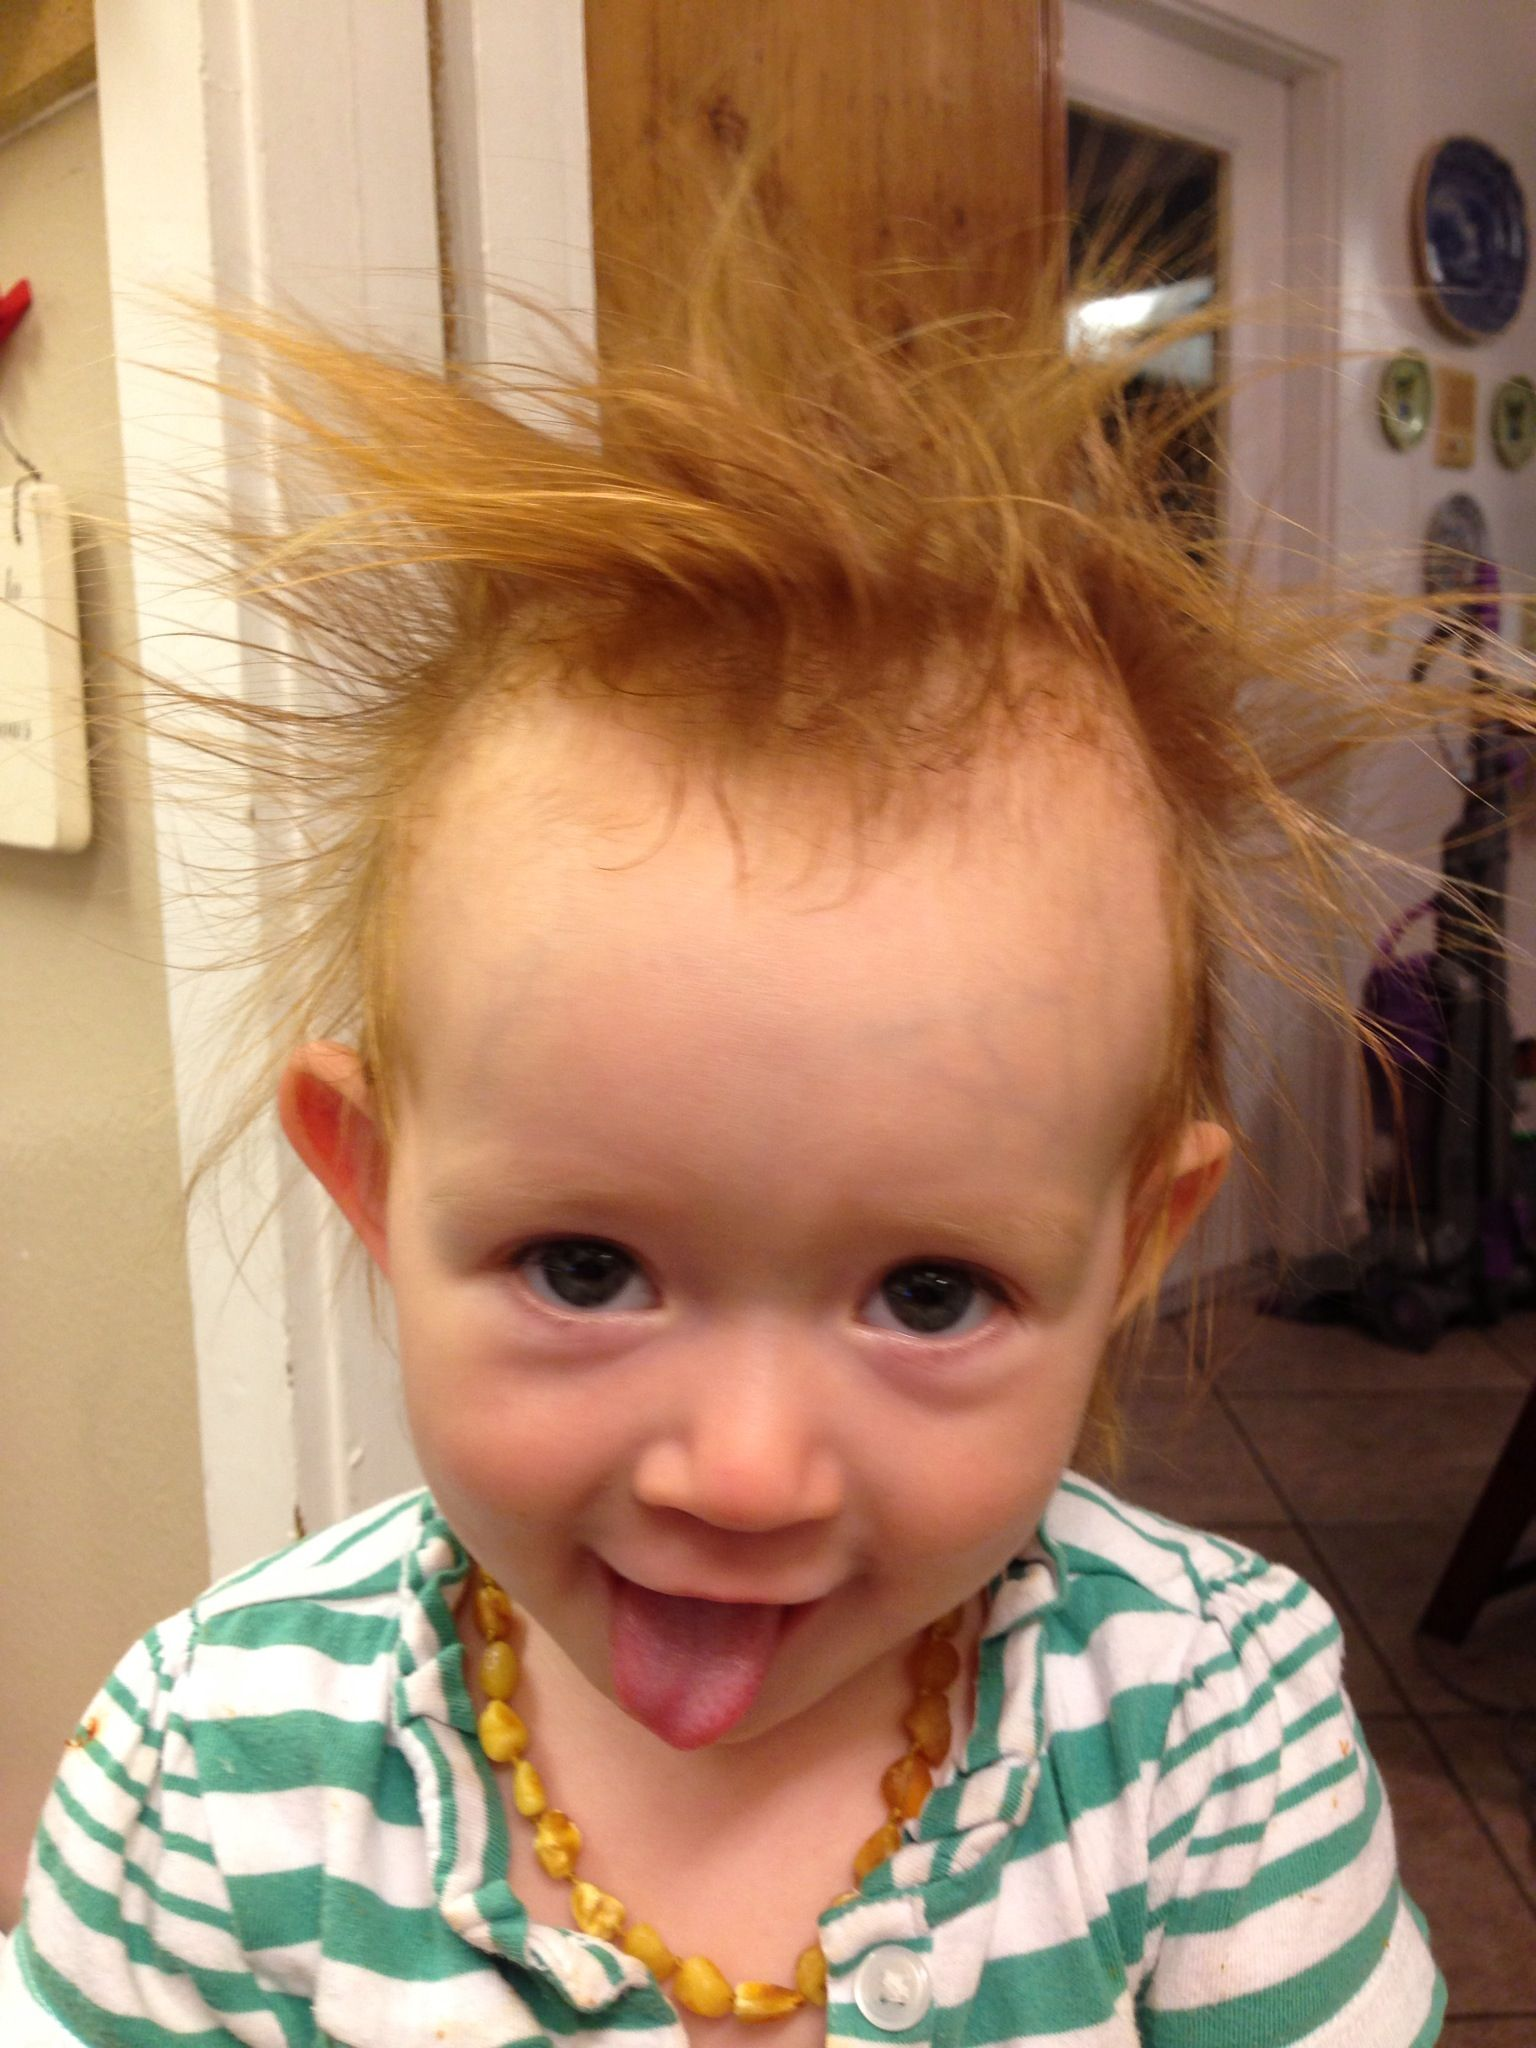 True Hair Raising Crazy Baby Hair Hair Raising Fun Pinterest